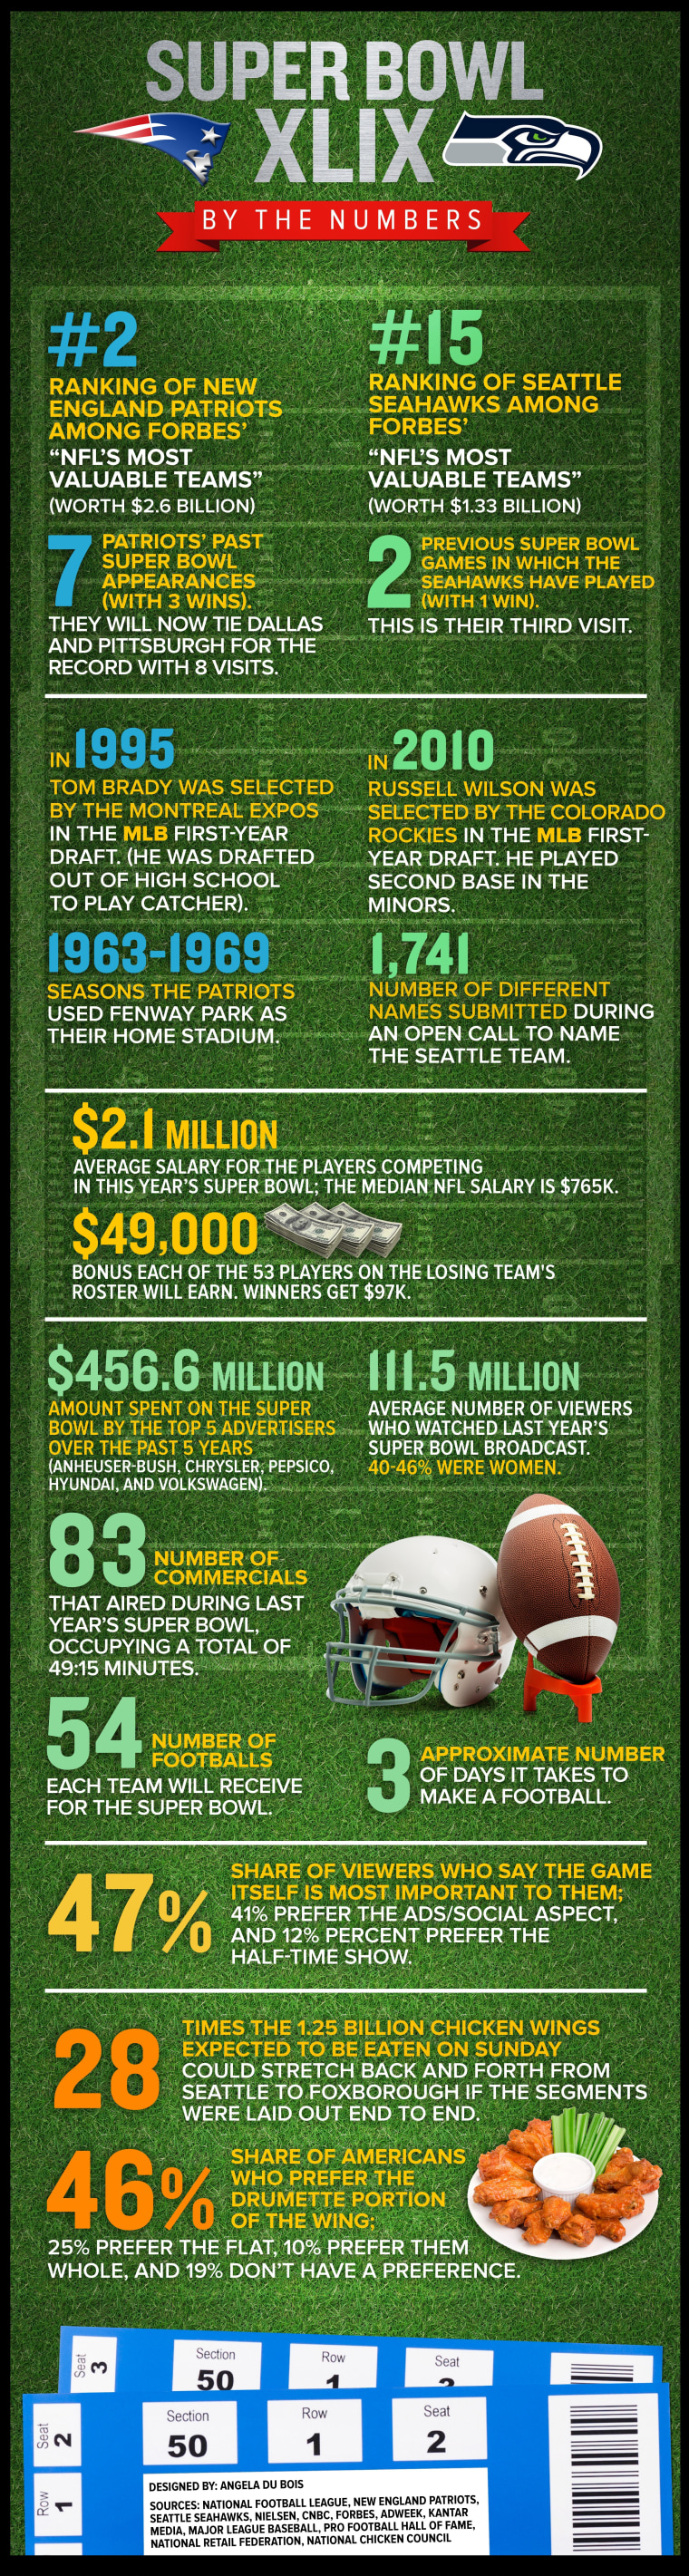 Super Bowl XLIX by the numbers